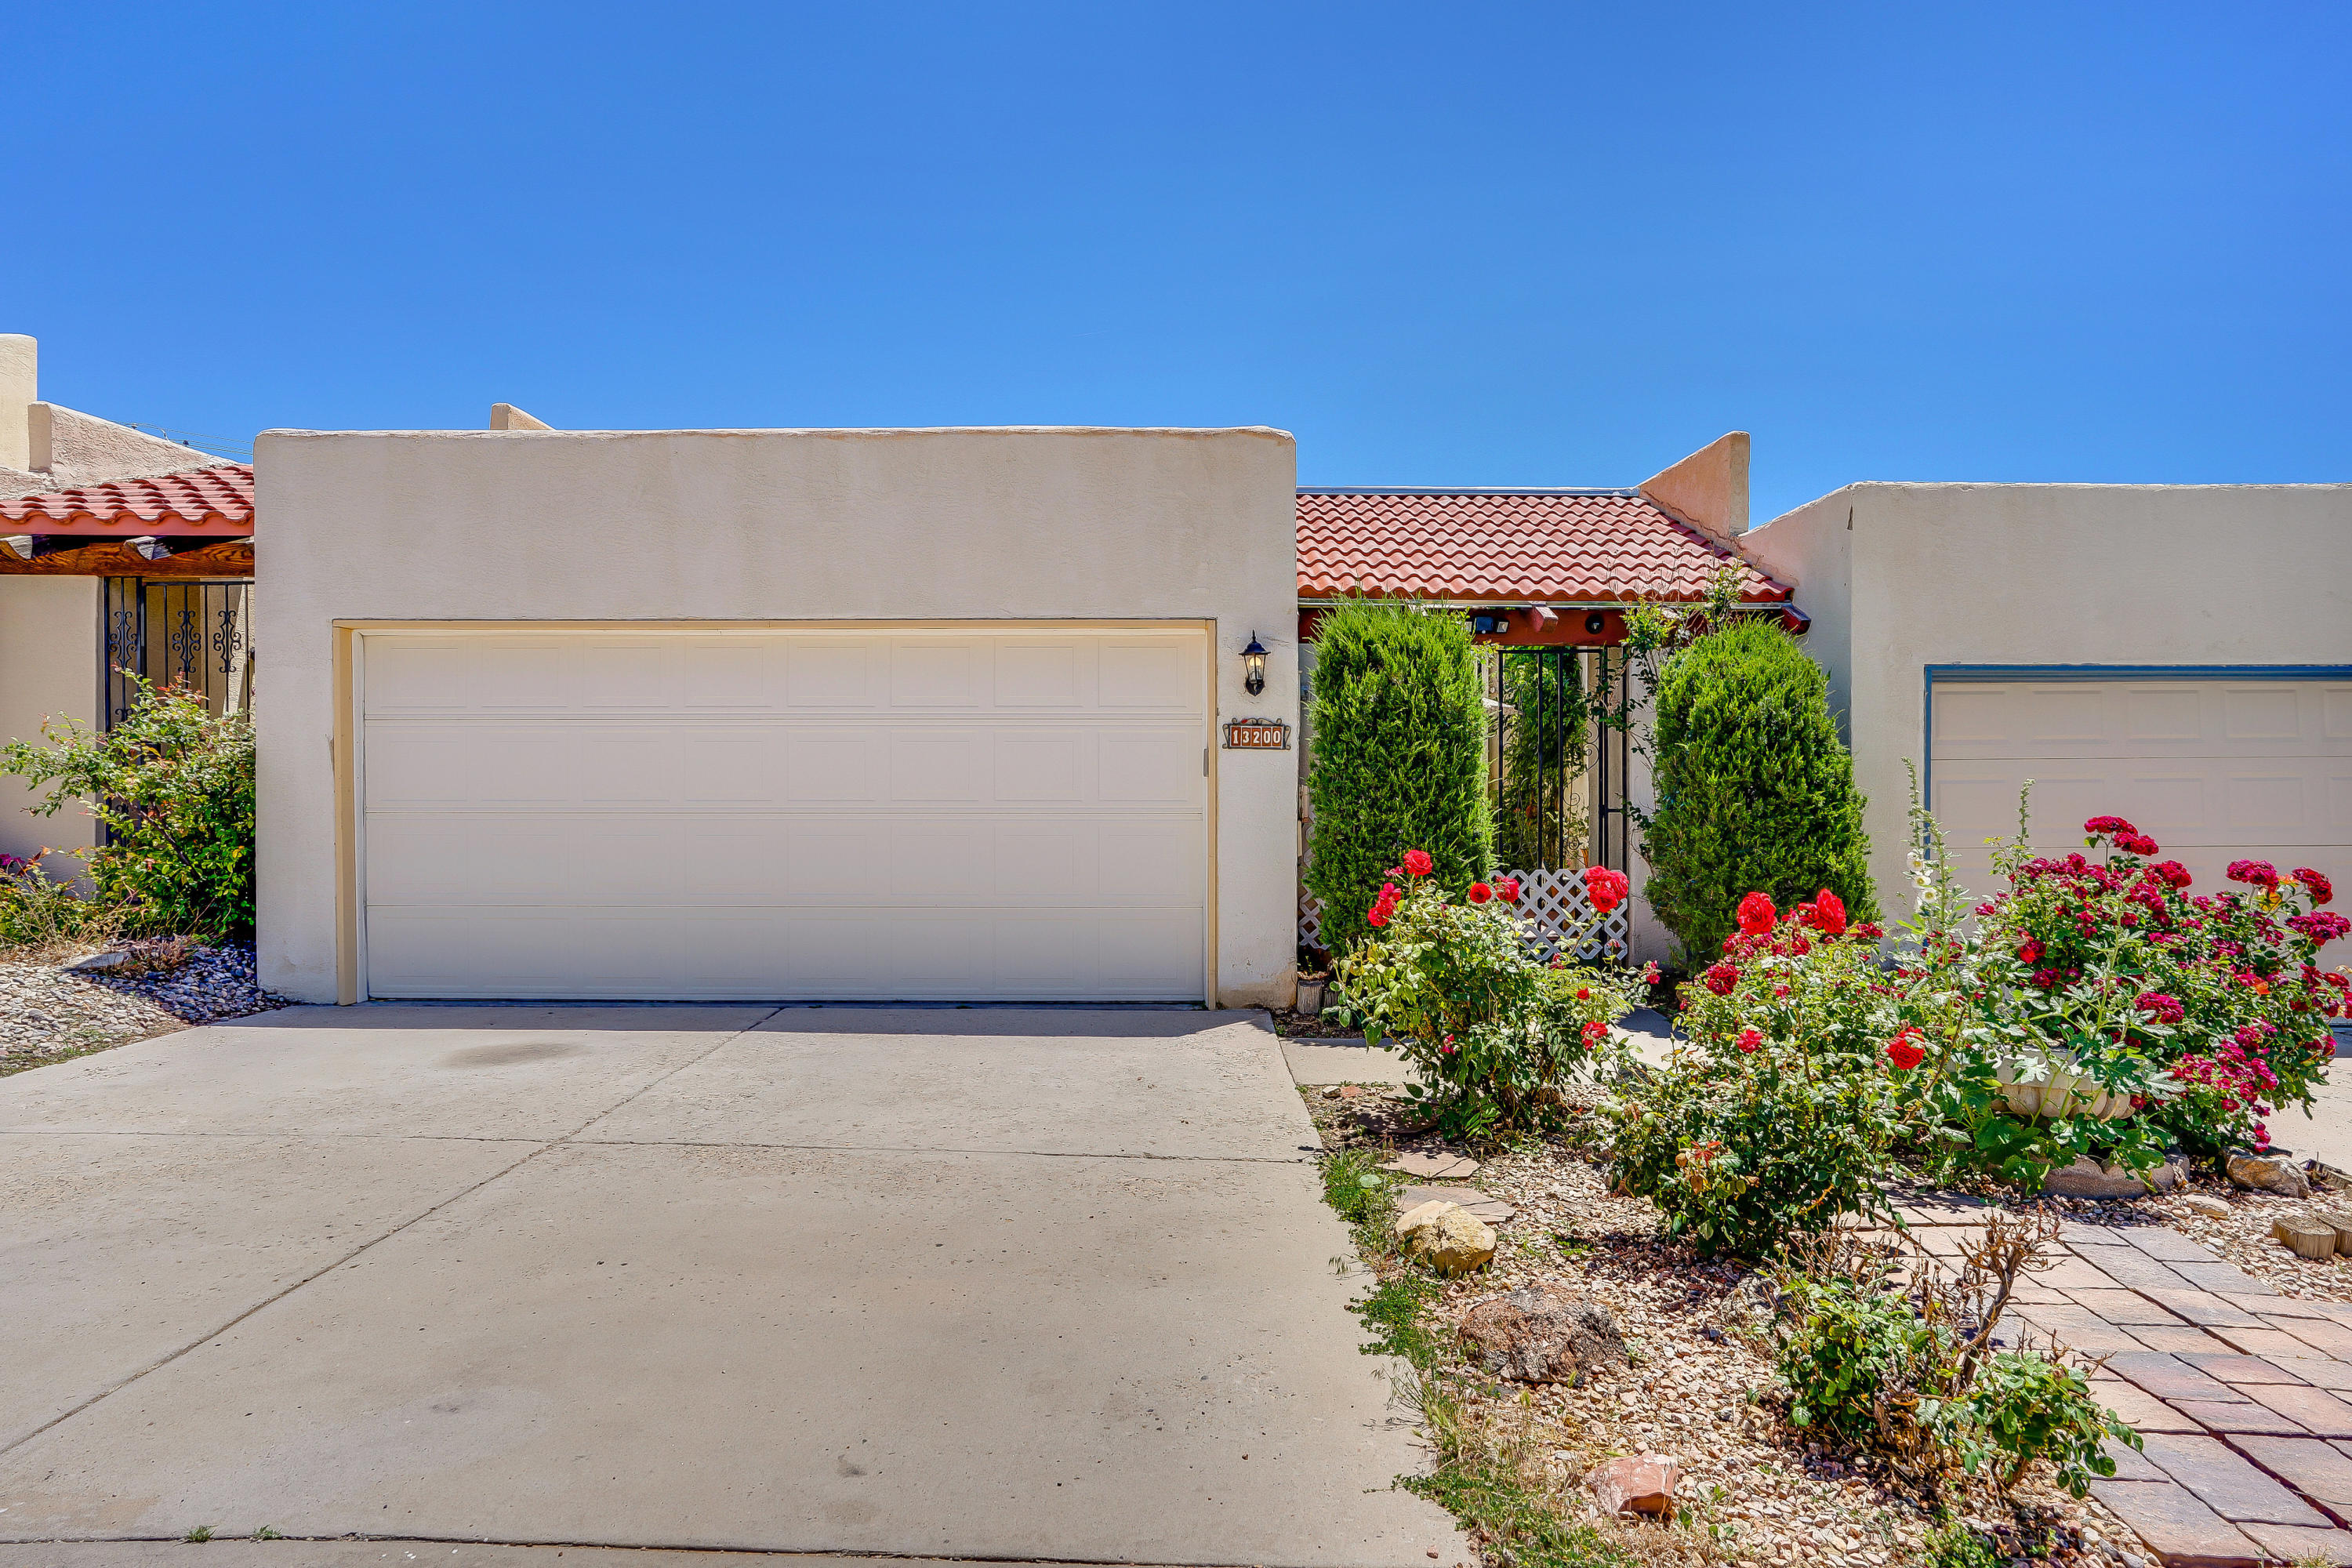 Charming, must-see townhome located near the foothills!  You will feel right at home with the open floor plan, cozy fireplace, updated flooring and relaxing low-maintenance yard. Skylights allow for natural light to flow into the living room, kitchen, and bathrooms! The kitchen features a breakfast bar, gas range, white cabinets, and plenty of counter space! Enjoy your morning cup of coffee in the attached sunroom. There is a small backyard space to enjoy a small garden or room to soak up some sun! Two-car garage and private courtyard entrance! Not to mention a brand new roof and swamp cooler that is only 1 year old.  Take a virtual walkthrough tour today! All offers will be reviewed Sunday 6/6 at 6 pm. Down payment assistance available through Bank of America - ask your agent how.